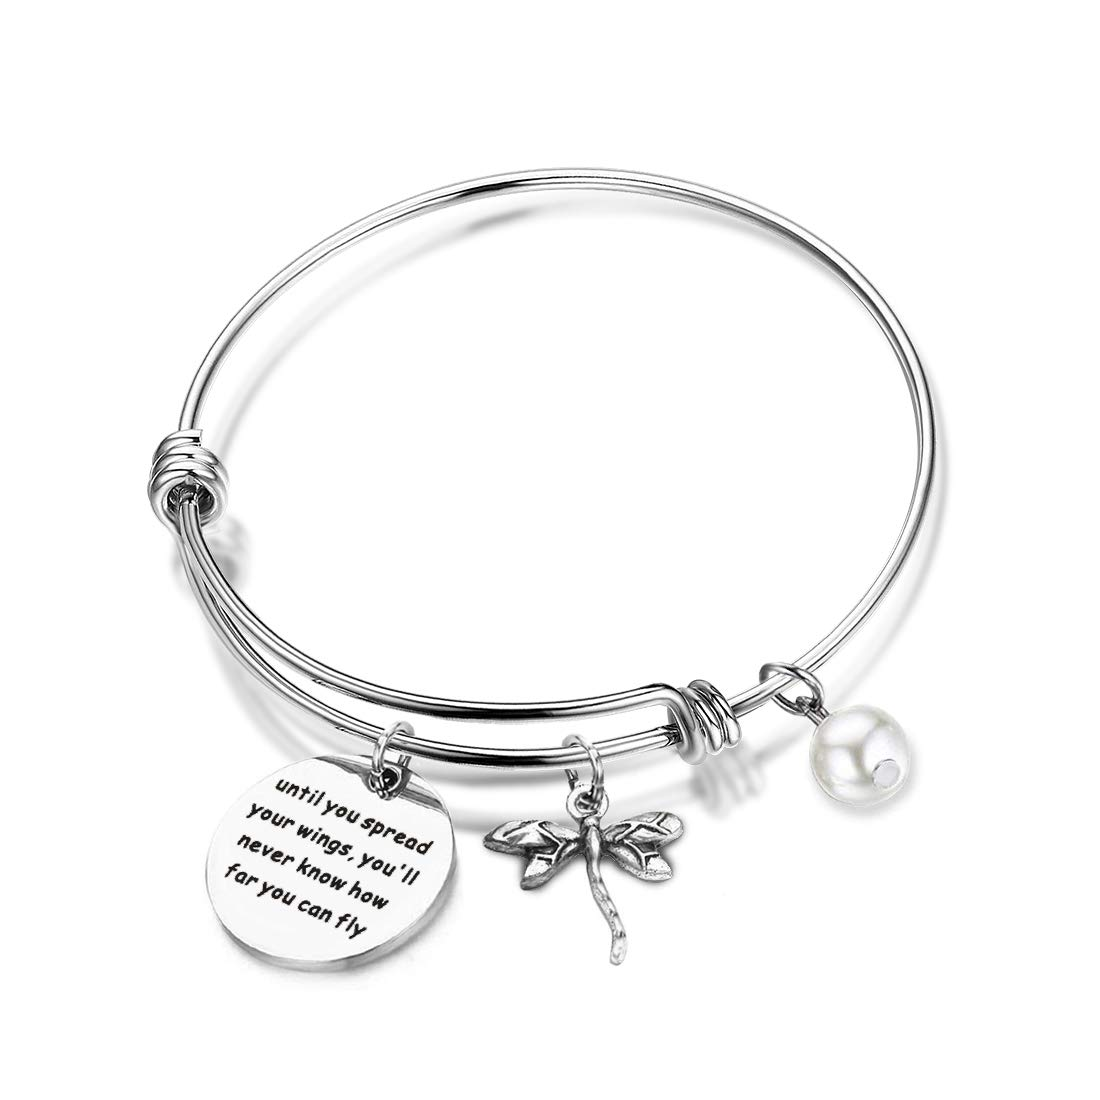 AKTAP Inspirational Jewelry Until You Spread Your Wings You'll Never Know How Far You Can Fly Dragonfly Charm Bracelet Encouragement Gifts for Her (Spread Your Wings Bracelet)